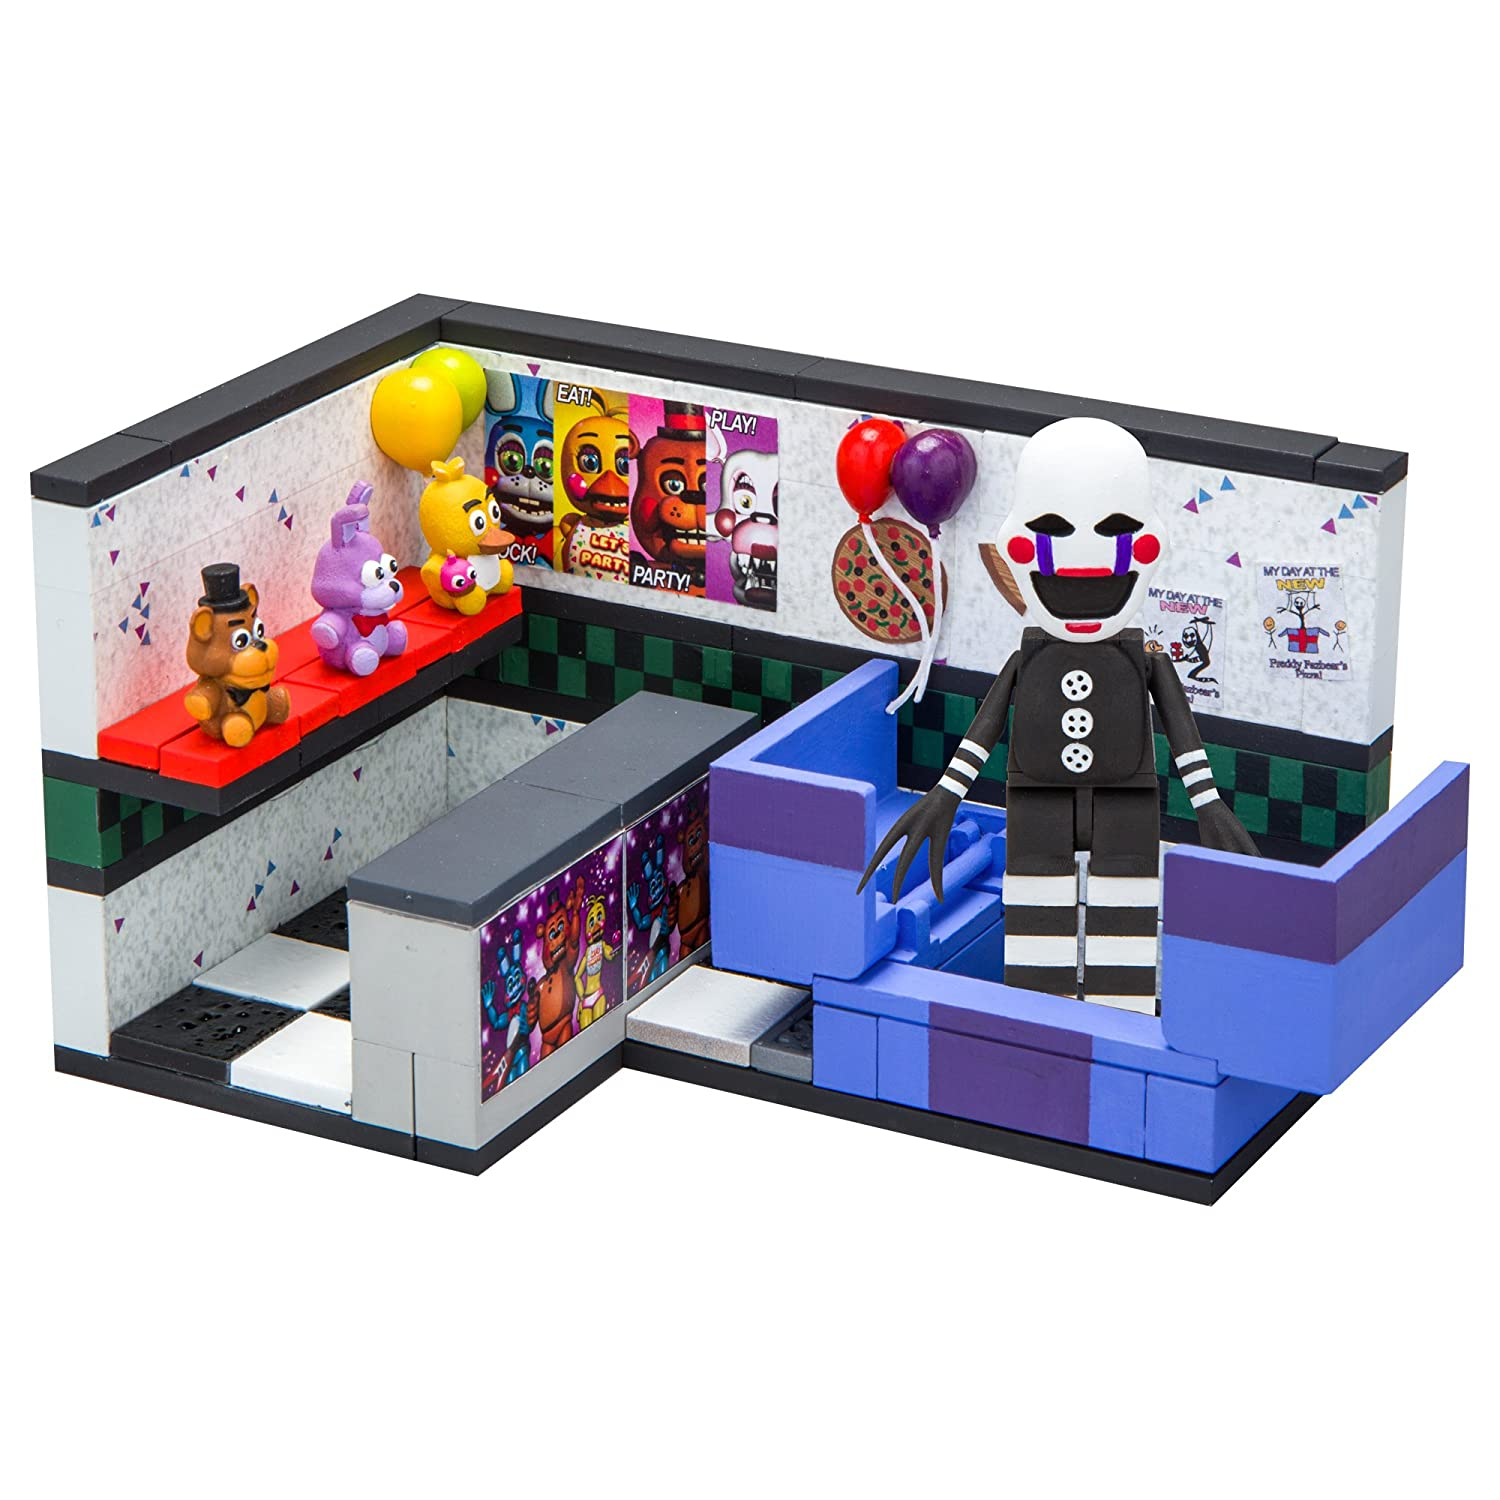 The Puppet Five Nights at Freddy/'s Prize Corner Construction Set